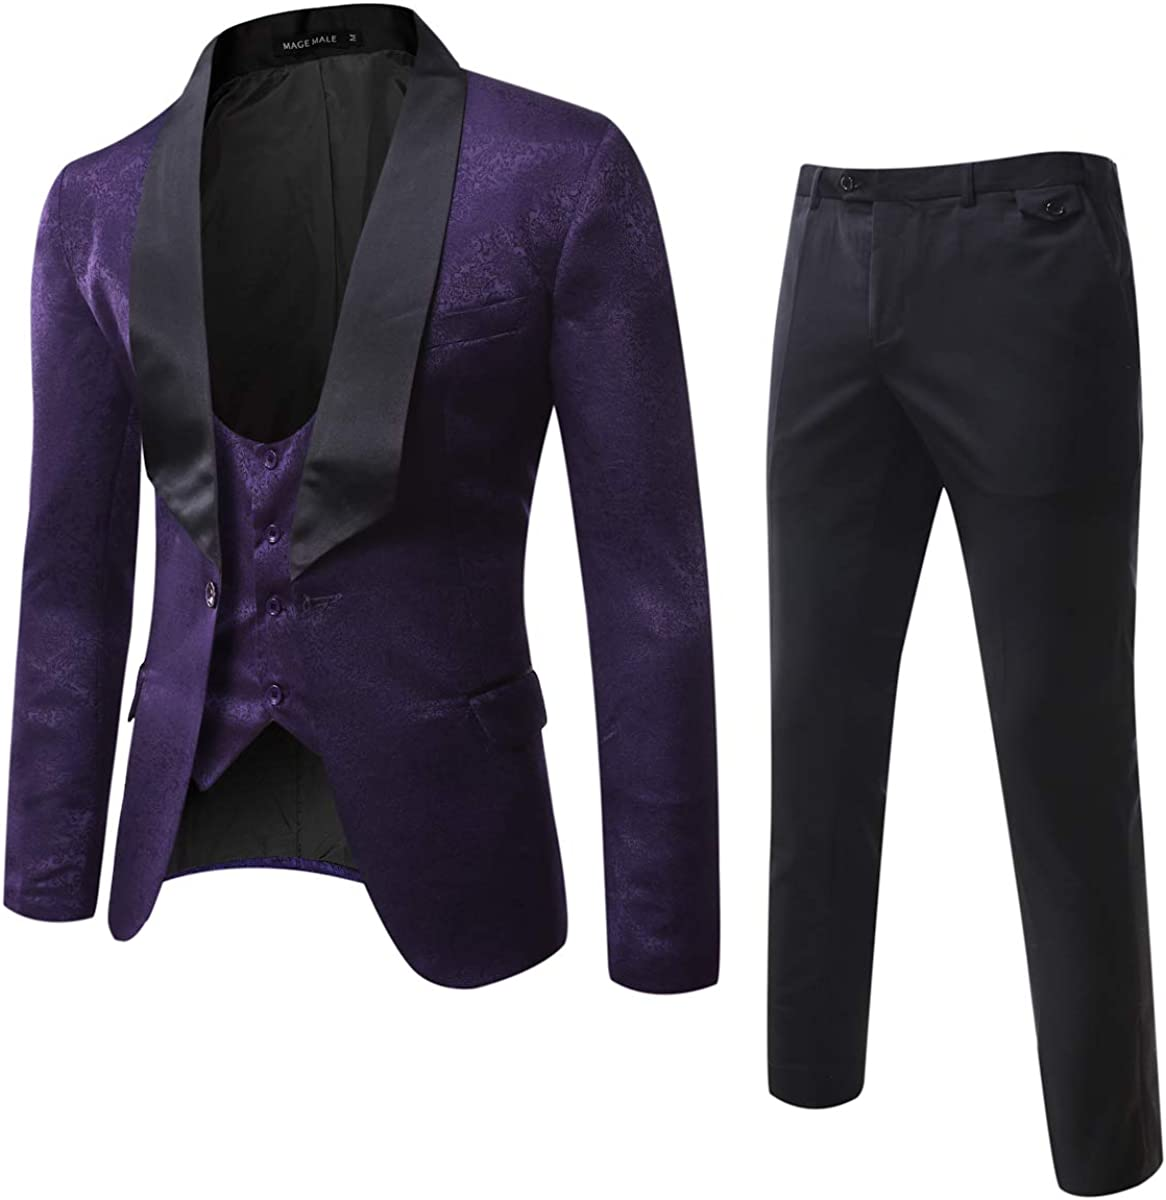 MAGE MALE Men's 3 Pieces Suit Elegant Print Tuxedos One Button Slim Fit Single Breasted Party Blazer Vest Pants Set